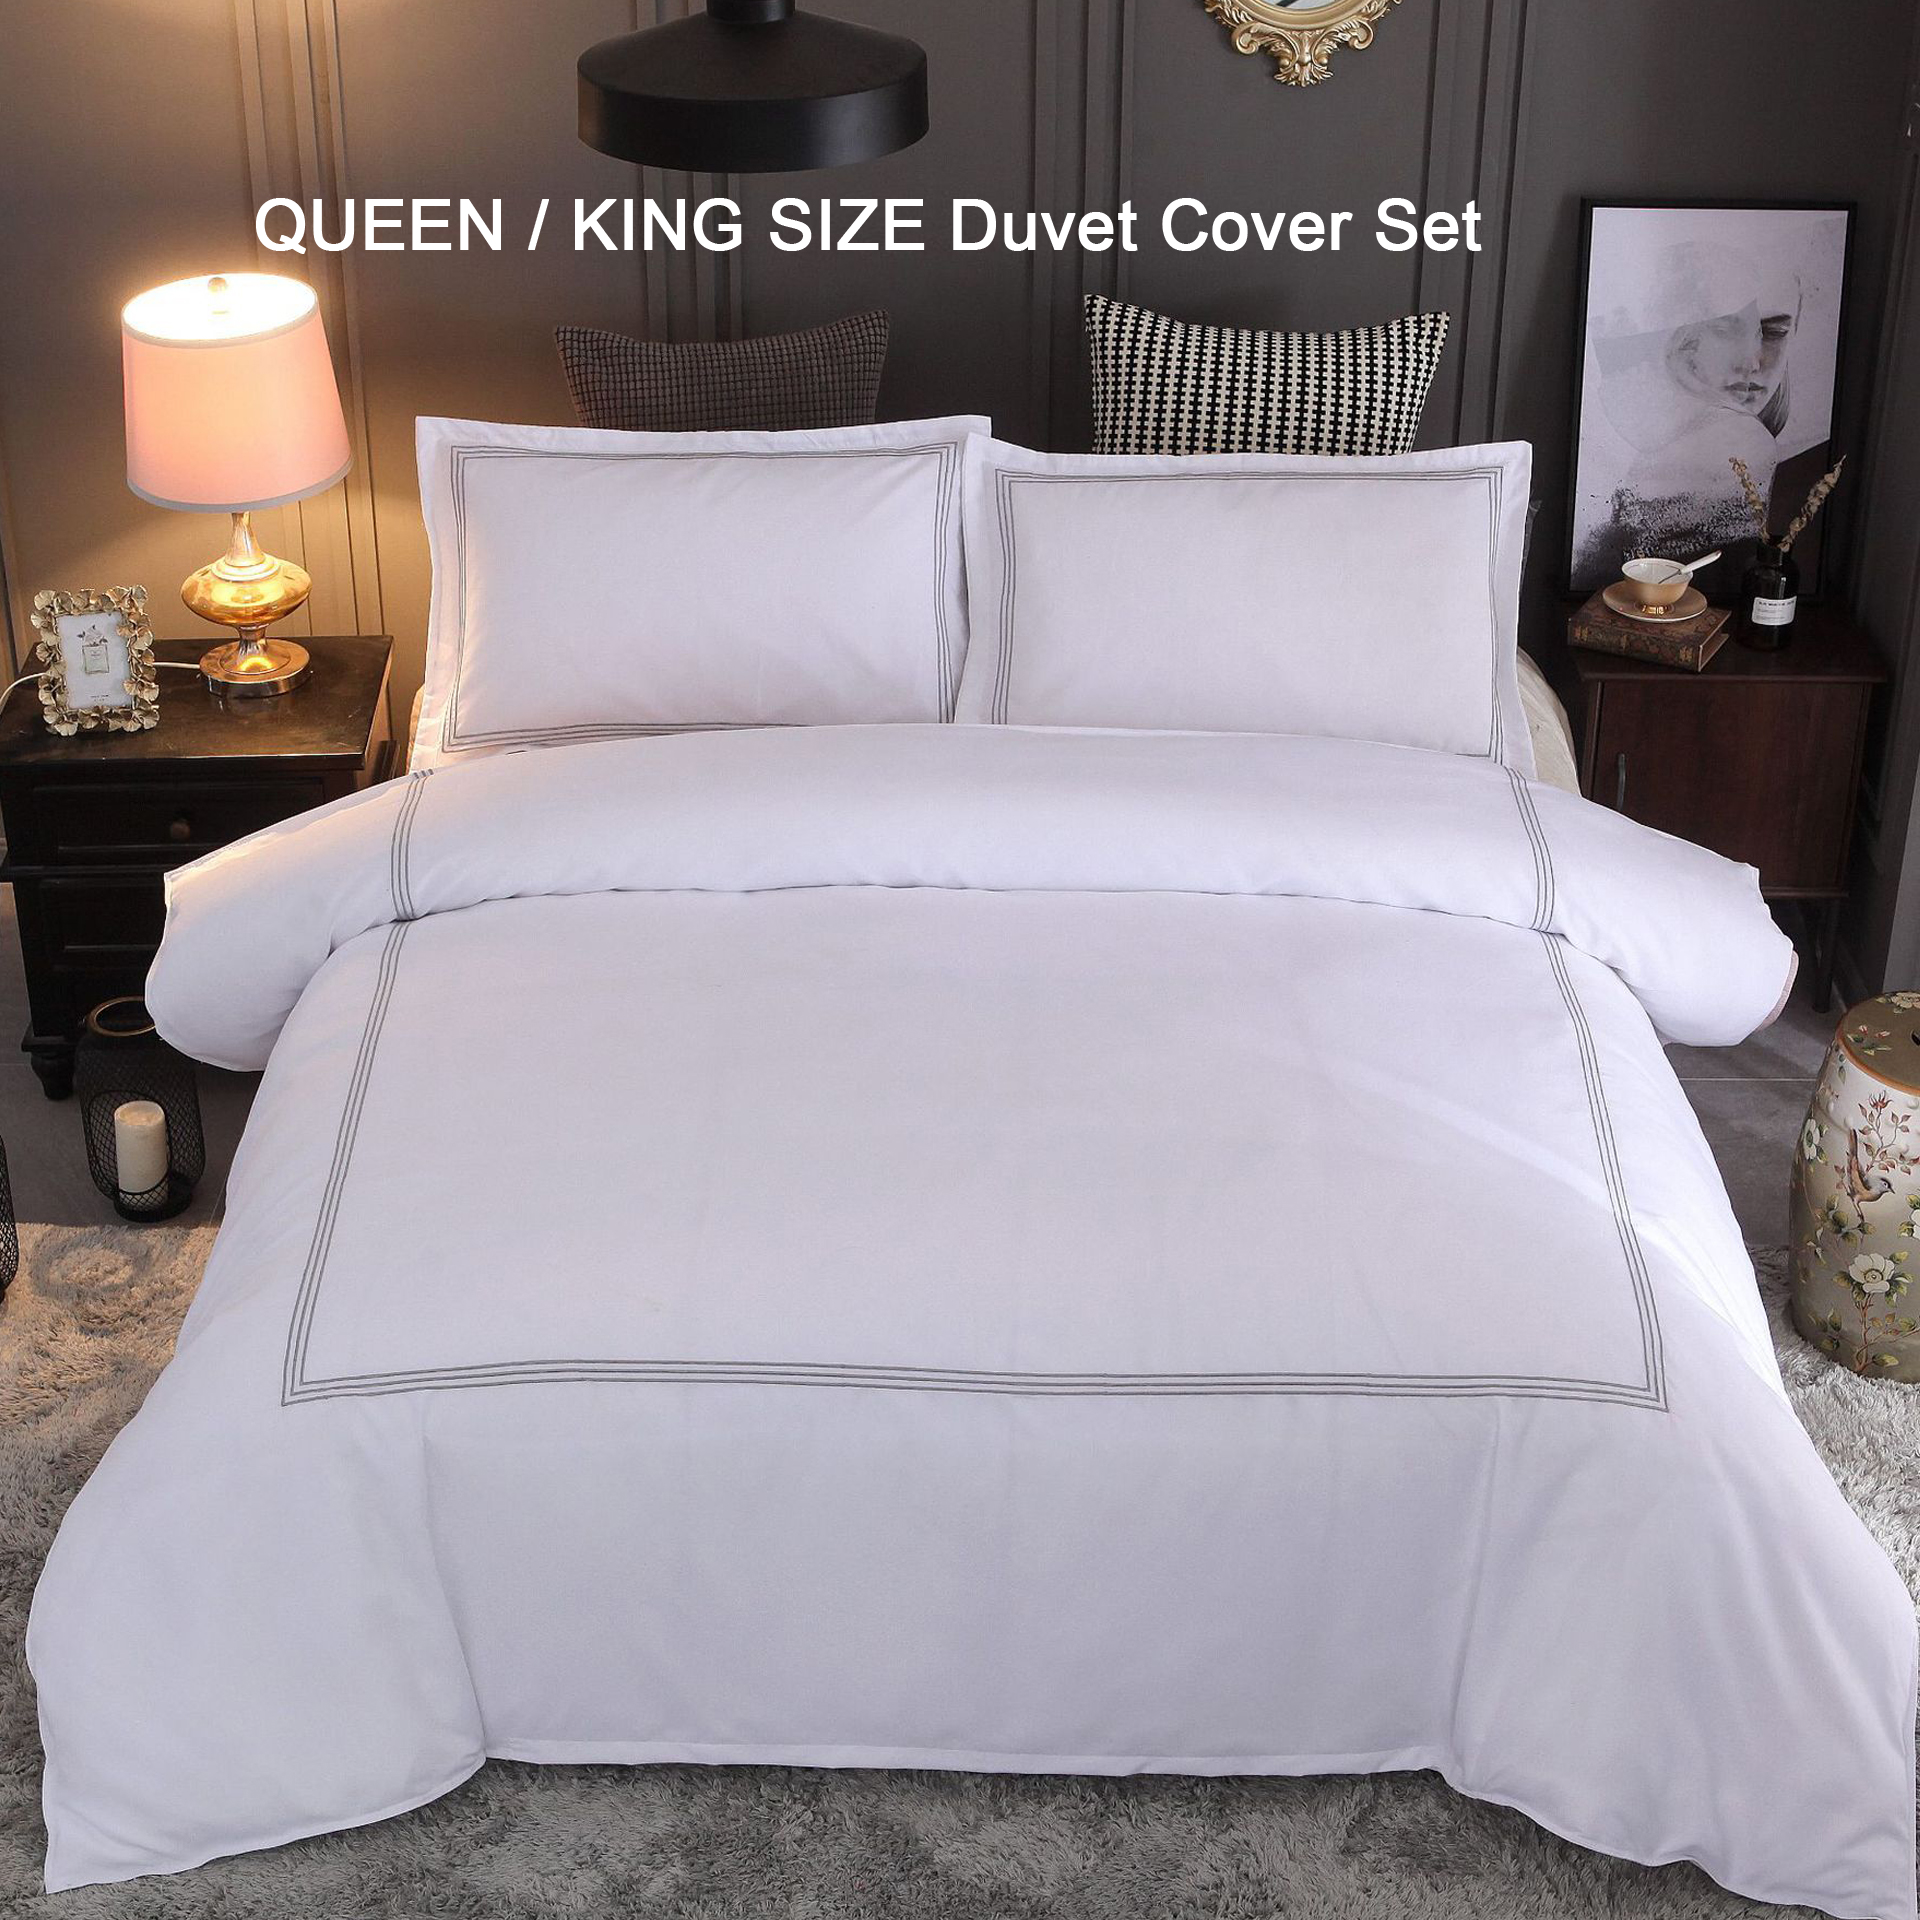 Soft Duvet Covers Us 45 9 49 Off Luxury Embroidery Polyester Soft Duvet Cover Set Queen King Size Simple Pure Color White Hotel Bedding Sets Duvet 2 Pillowcases In